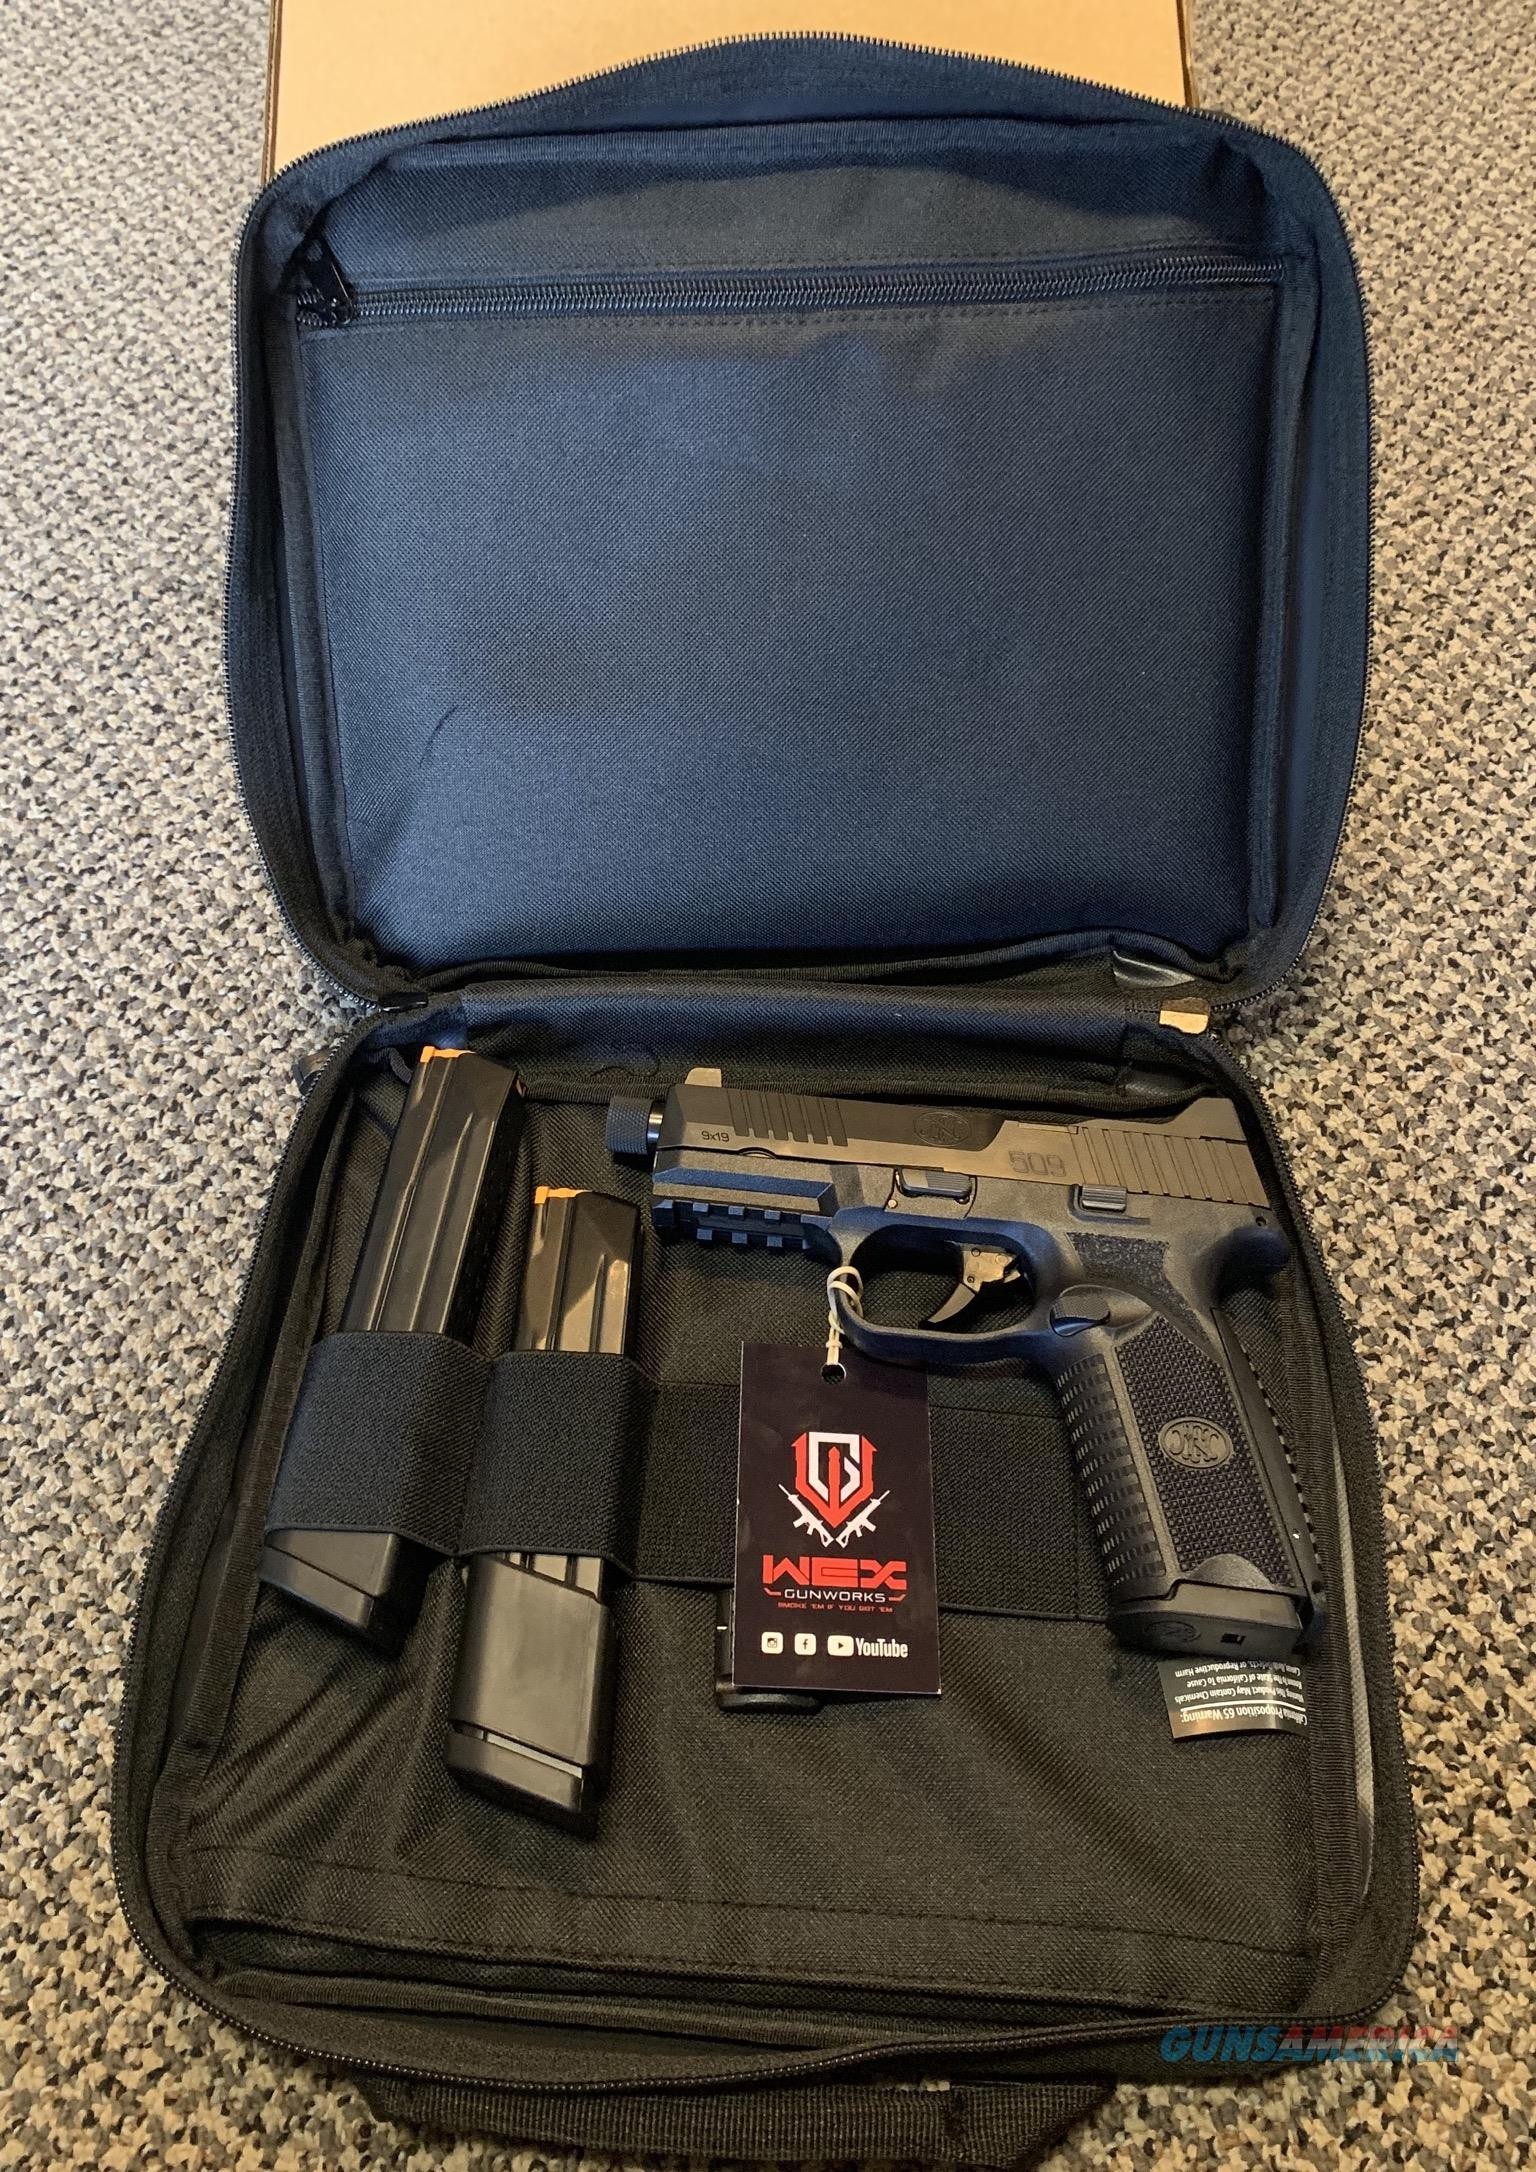 FN 509 TACTICAL 9MM NEW IN BOX  Guns > Pistols > FNH - Fabrique Nationale (FN) Pistols > FN 509